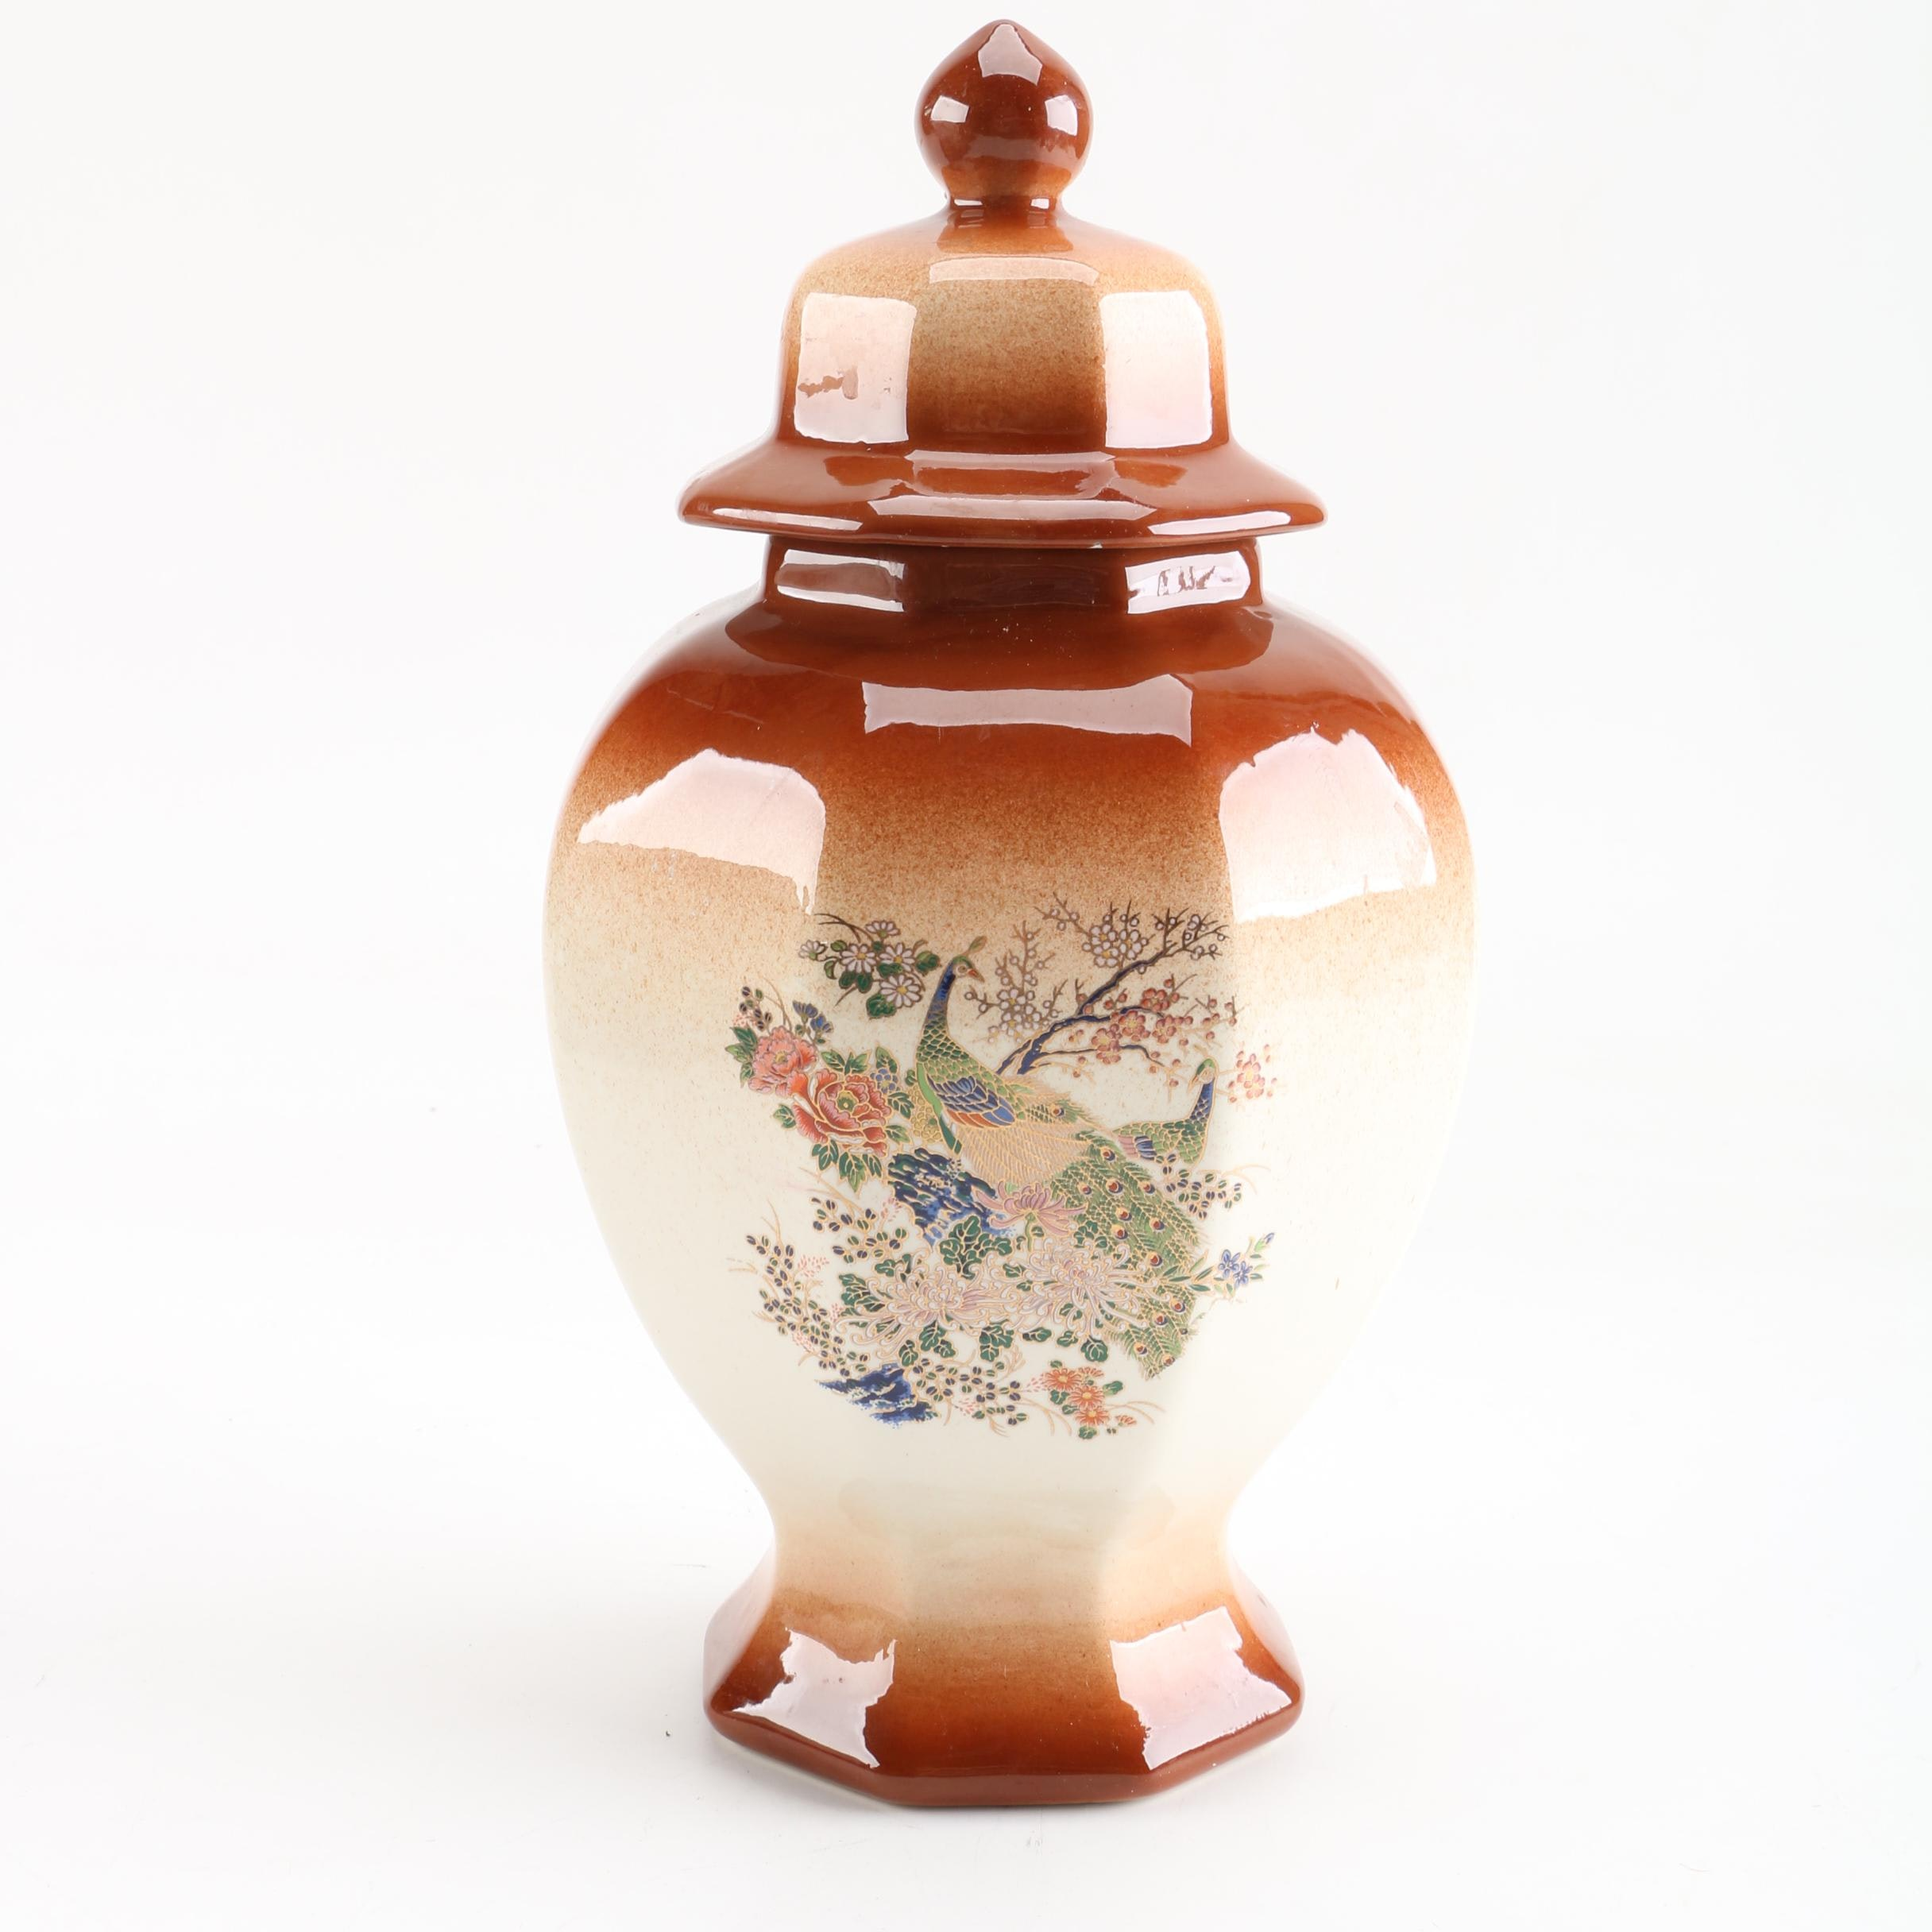 Japanese Lidded Peacock Motif Ceramic Ginger Jar